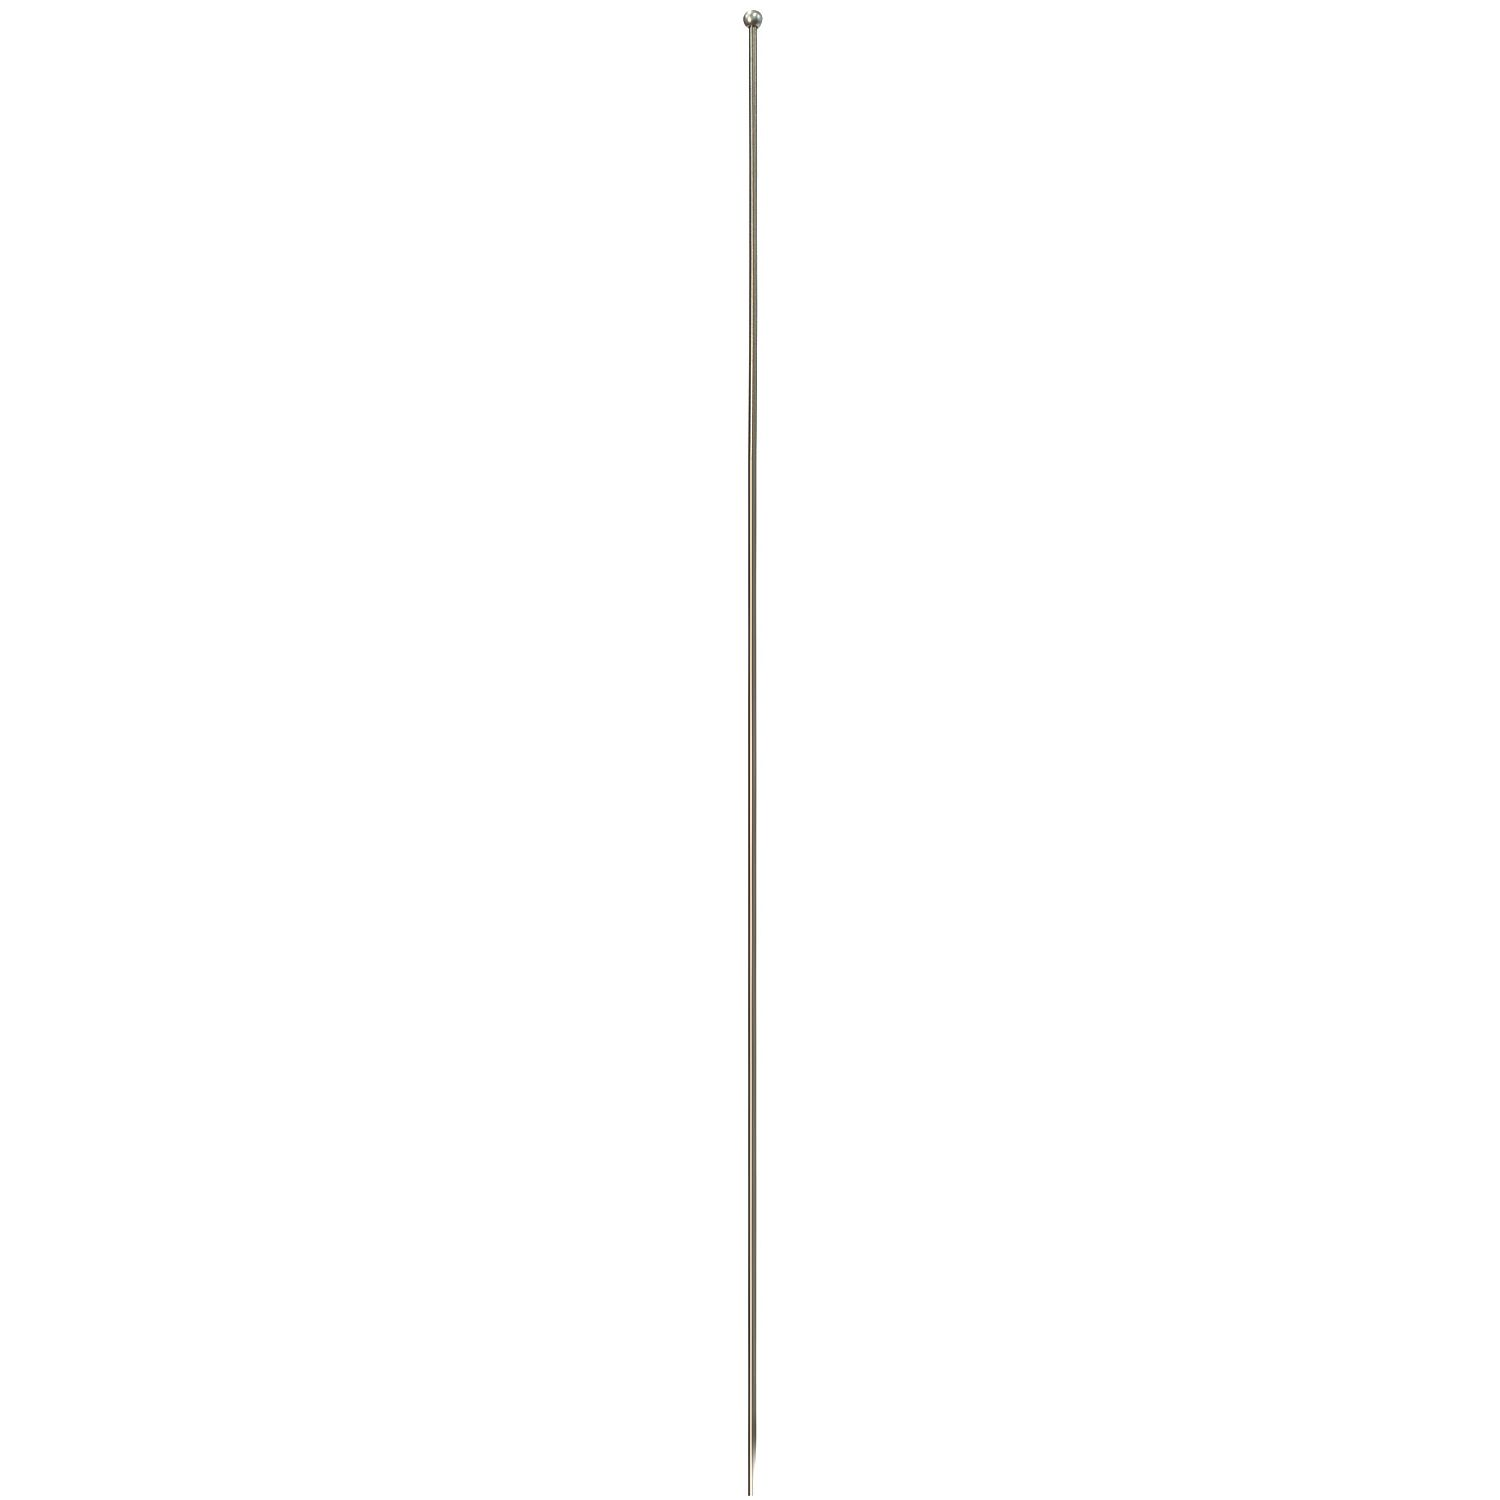 "MATH - Maxrad 49"" Chrome Whip Antenna"